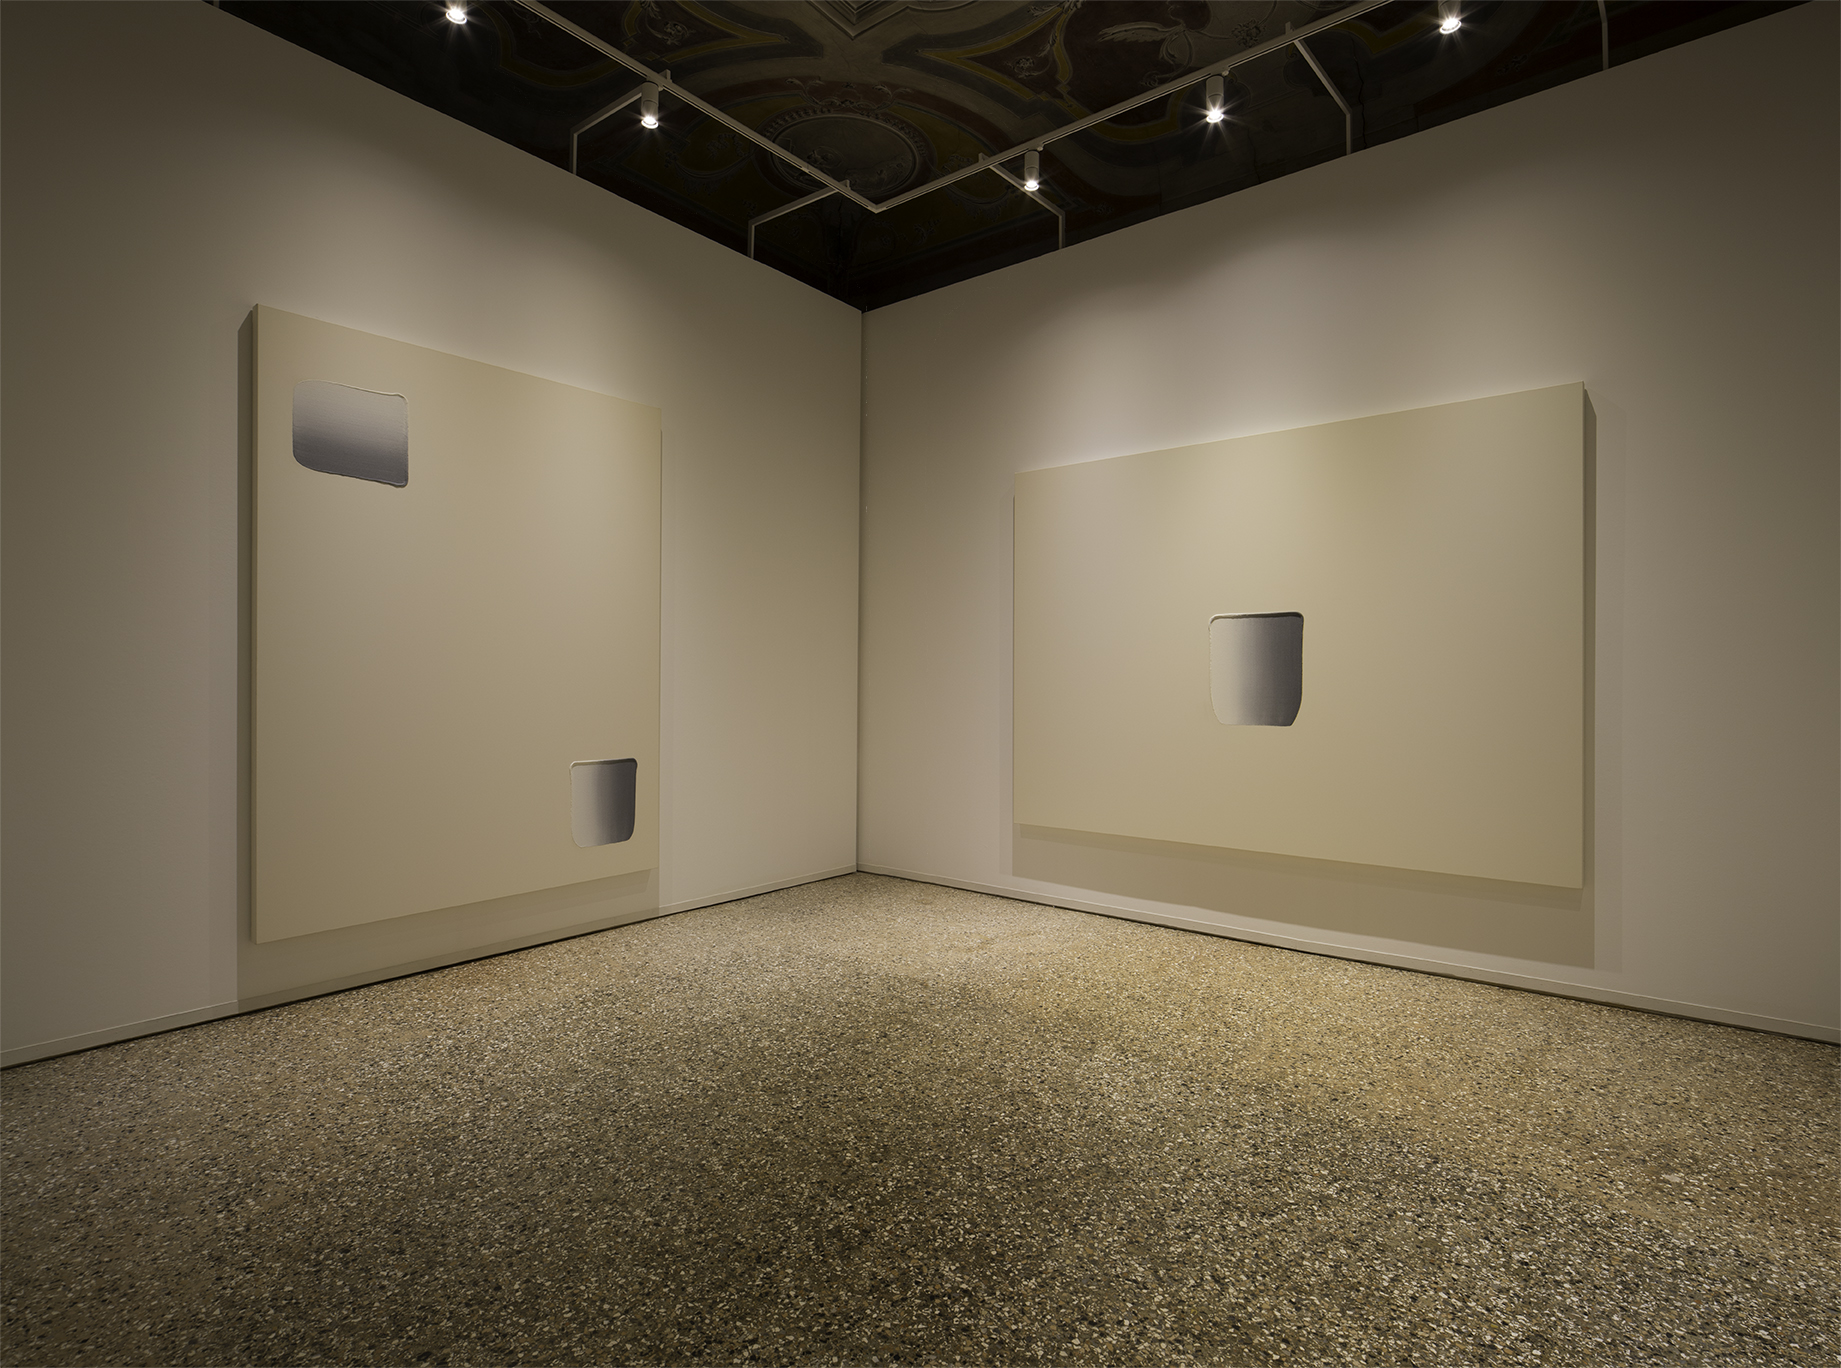 Installation View. Dansaekhwa, collateral event of the 56th International Art Exhibition - la Biennale di Venezia, 2015.  Photo by Fabrice Seixas. Image Provided by Kukje Gallery.